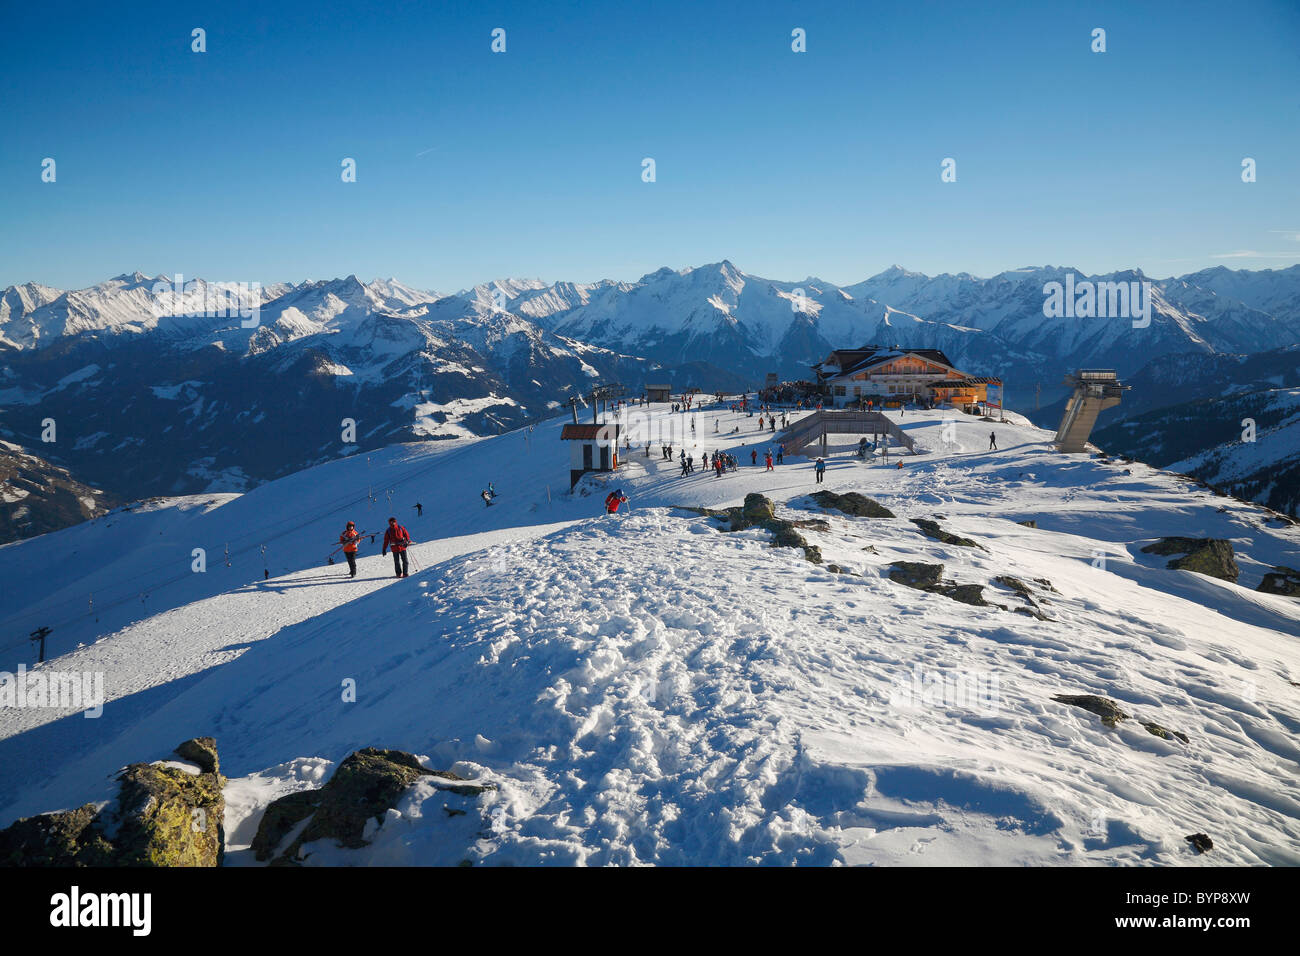 Skiing on the hill at Hochzillertal, Austria, Europe - Stock Image